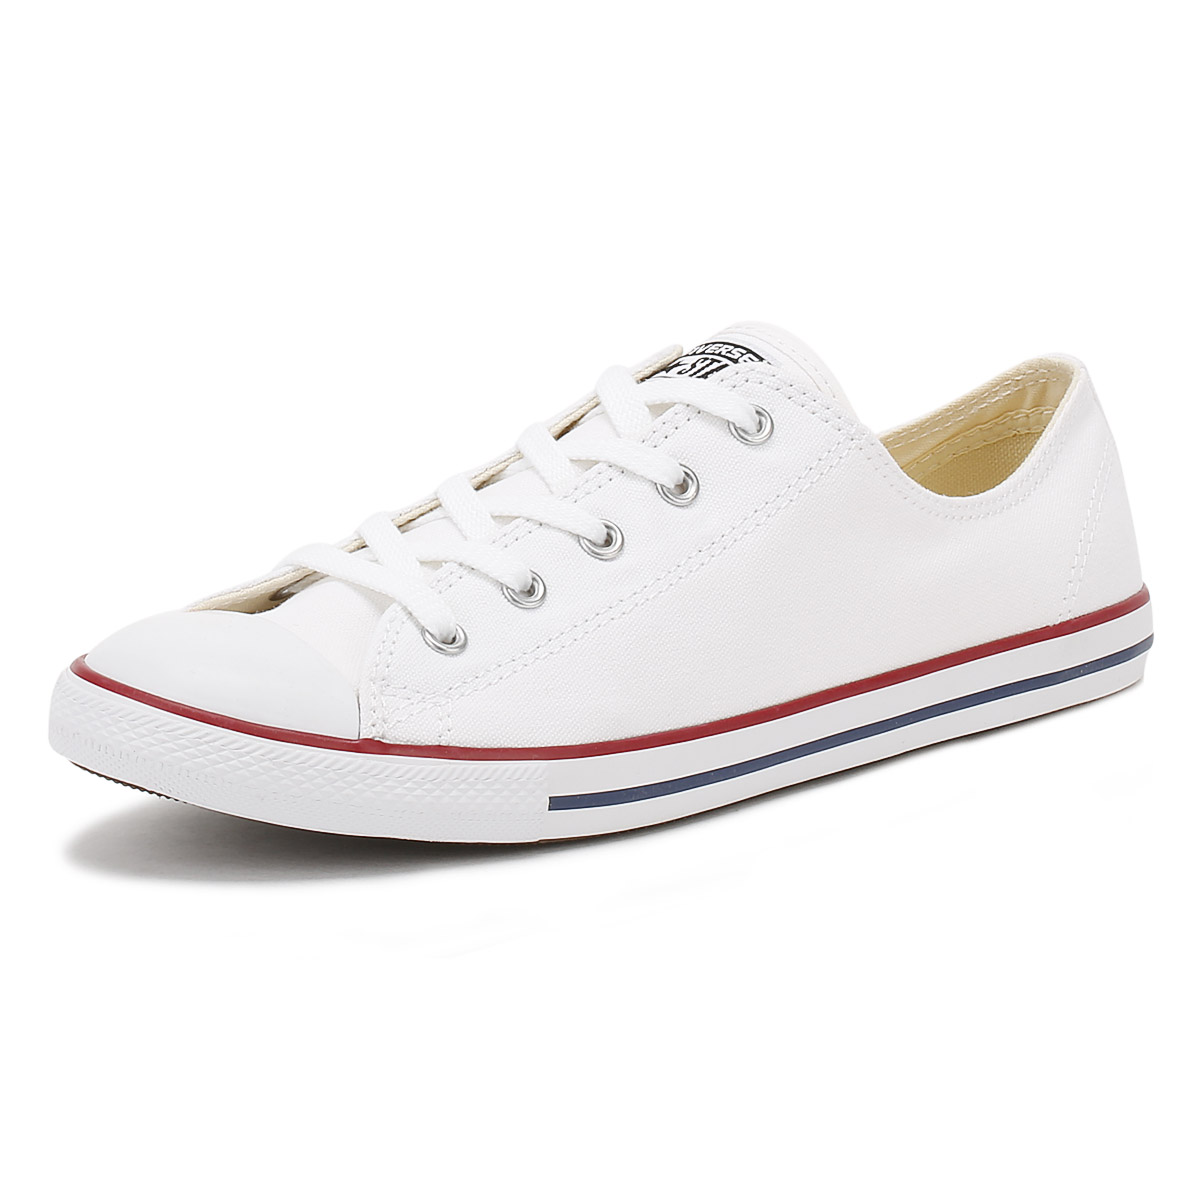 Converse Damenschuhe Trainers Chuck Taylor Sneakers Dainty Weiß Casual Schuhes Sneakers Taylor 8fda28